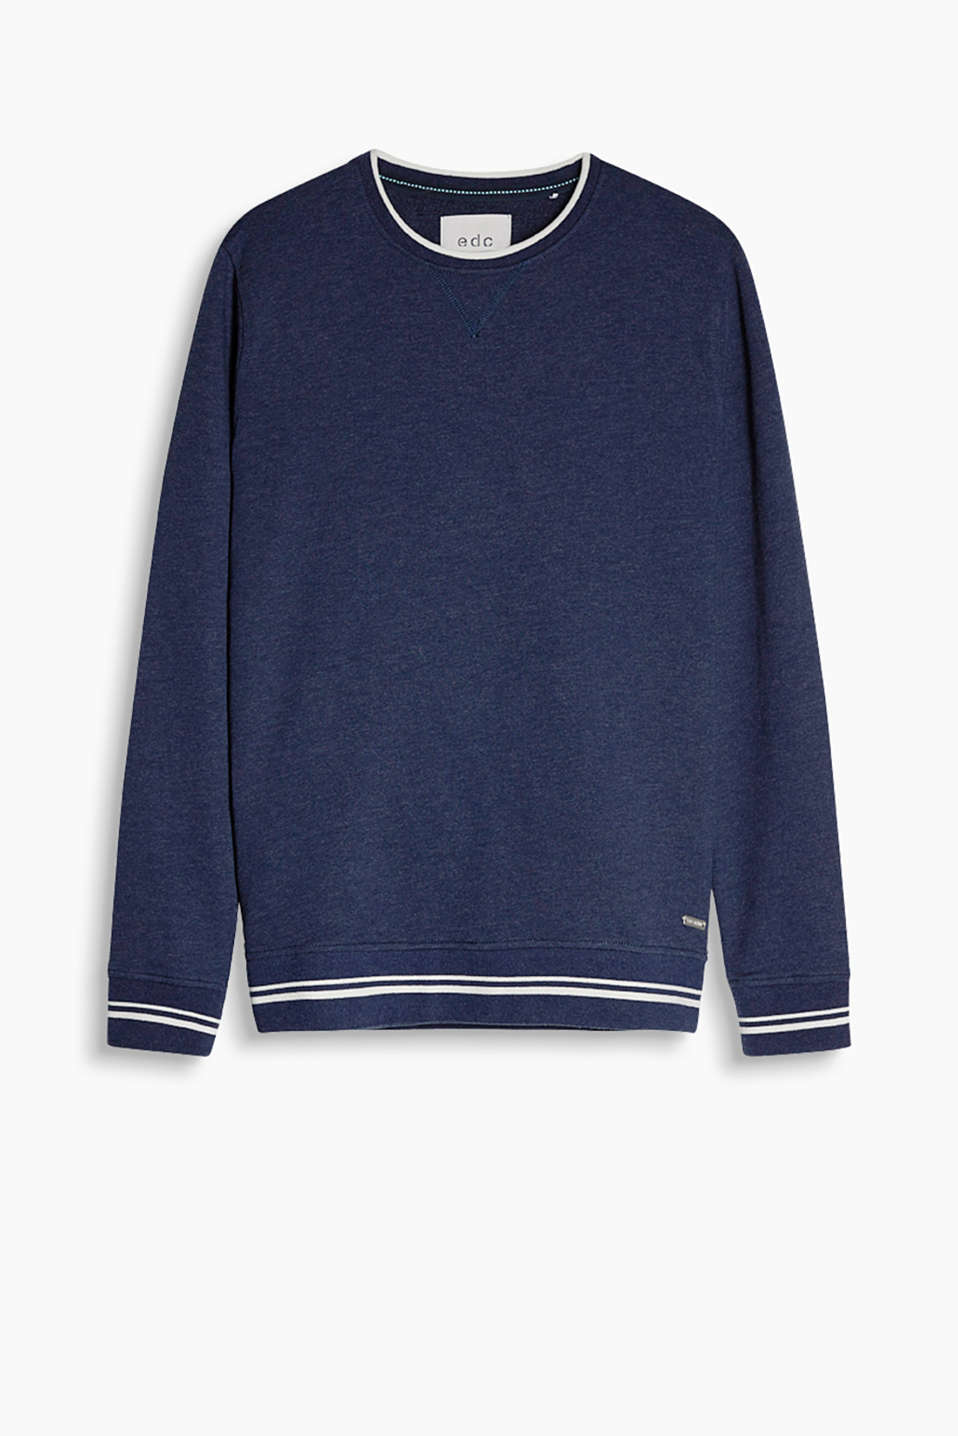 With nautically striped ribbed waistband and cuffs: sweatshirt in soft blended cotton